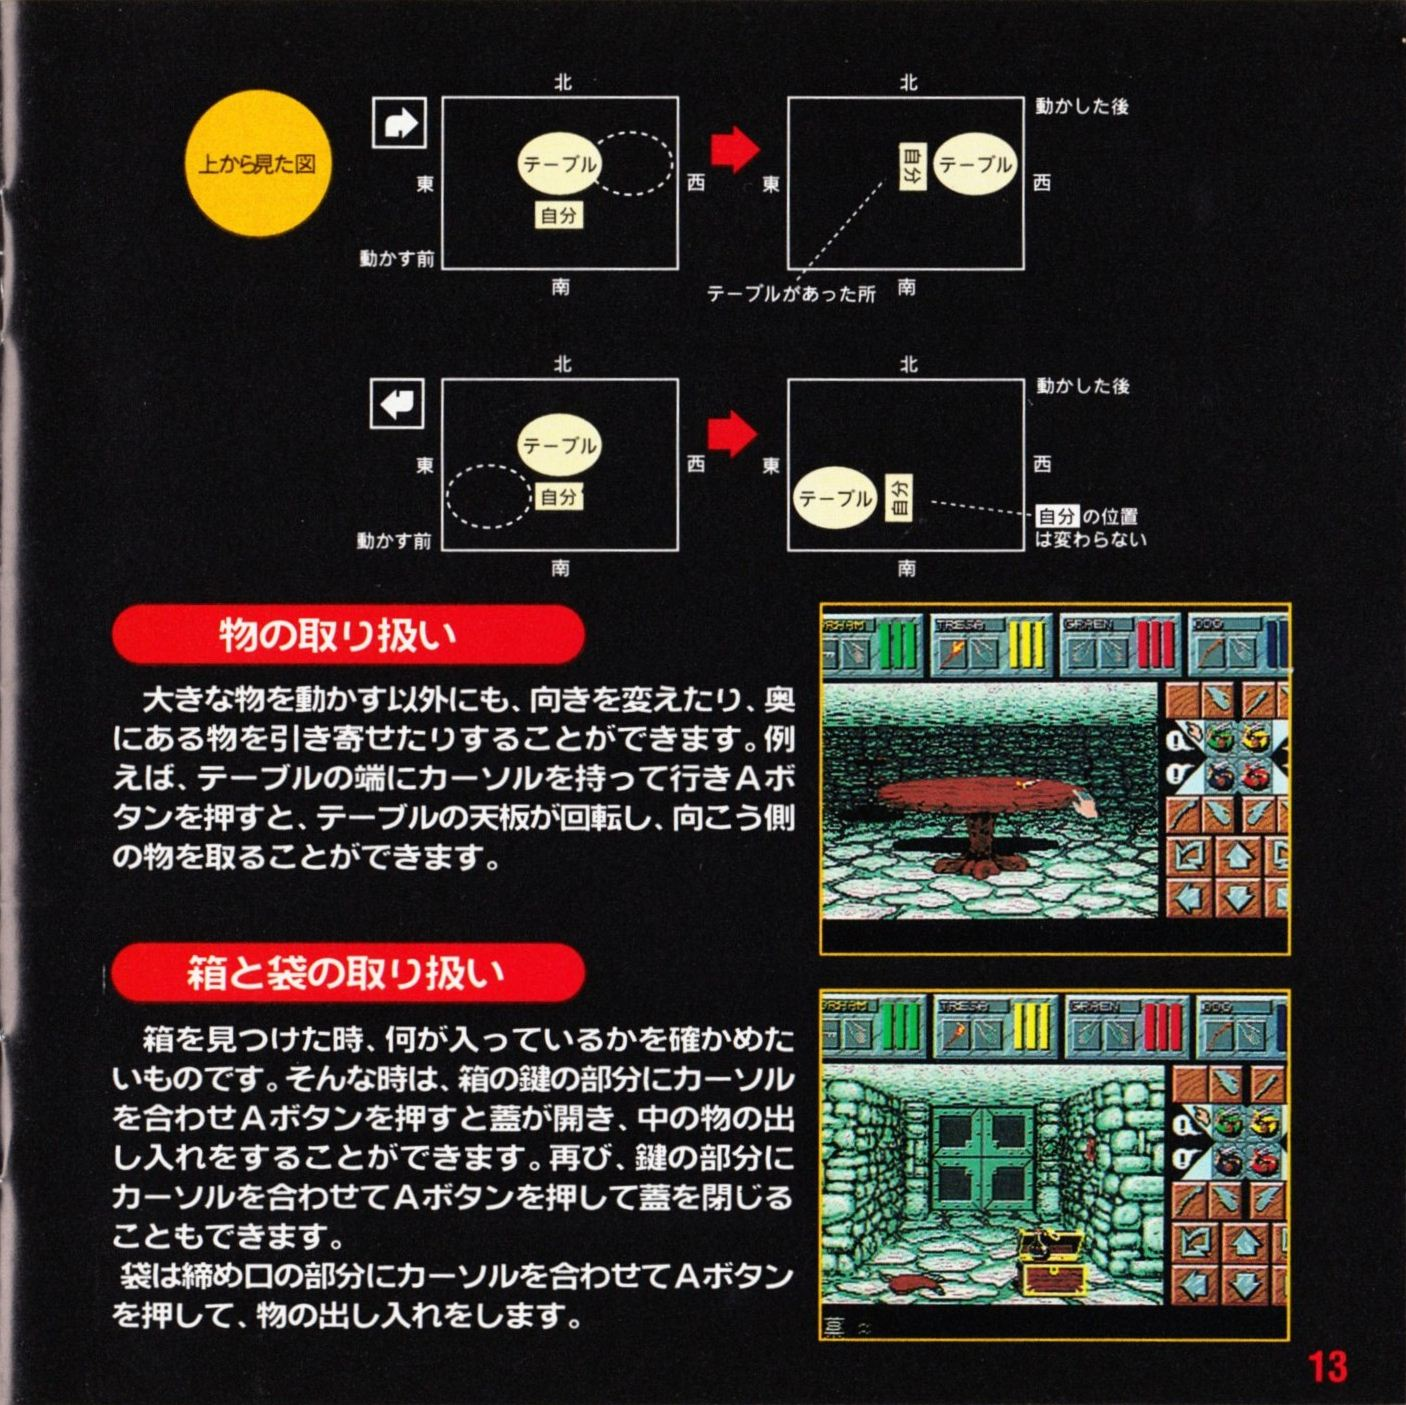 Game - Dungeon Master II - JP - Mega CD - Booklet - Page 015 - Scan